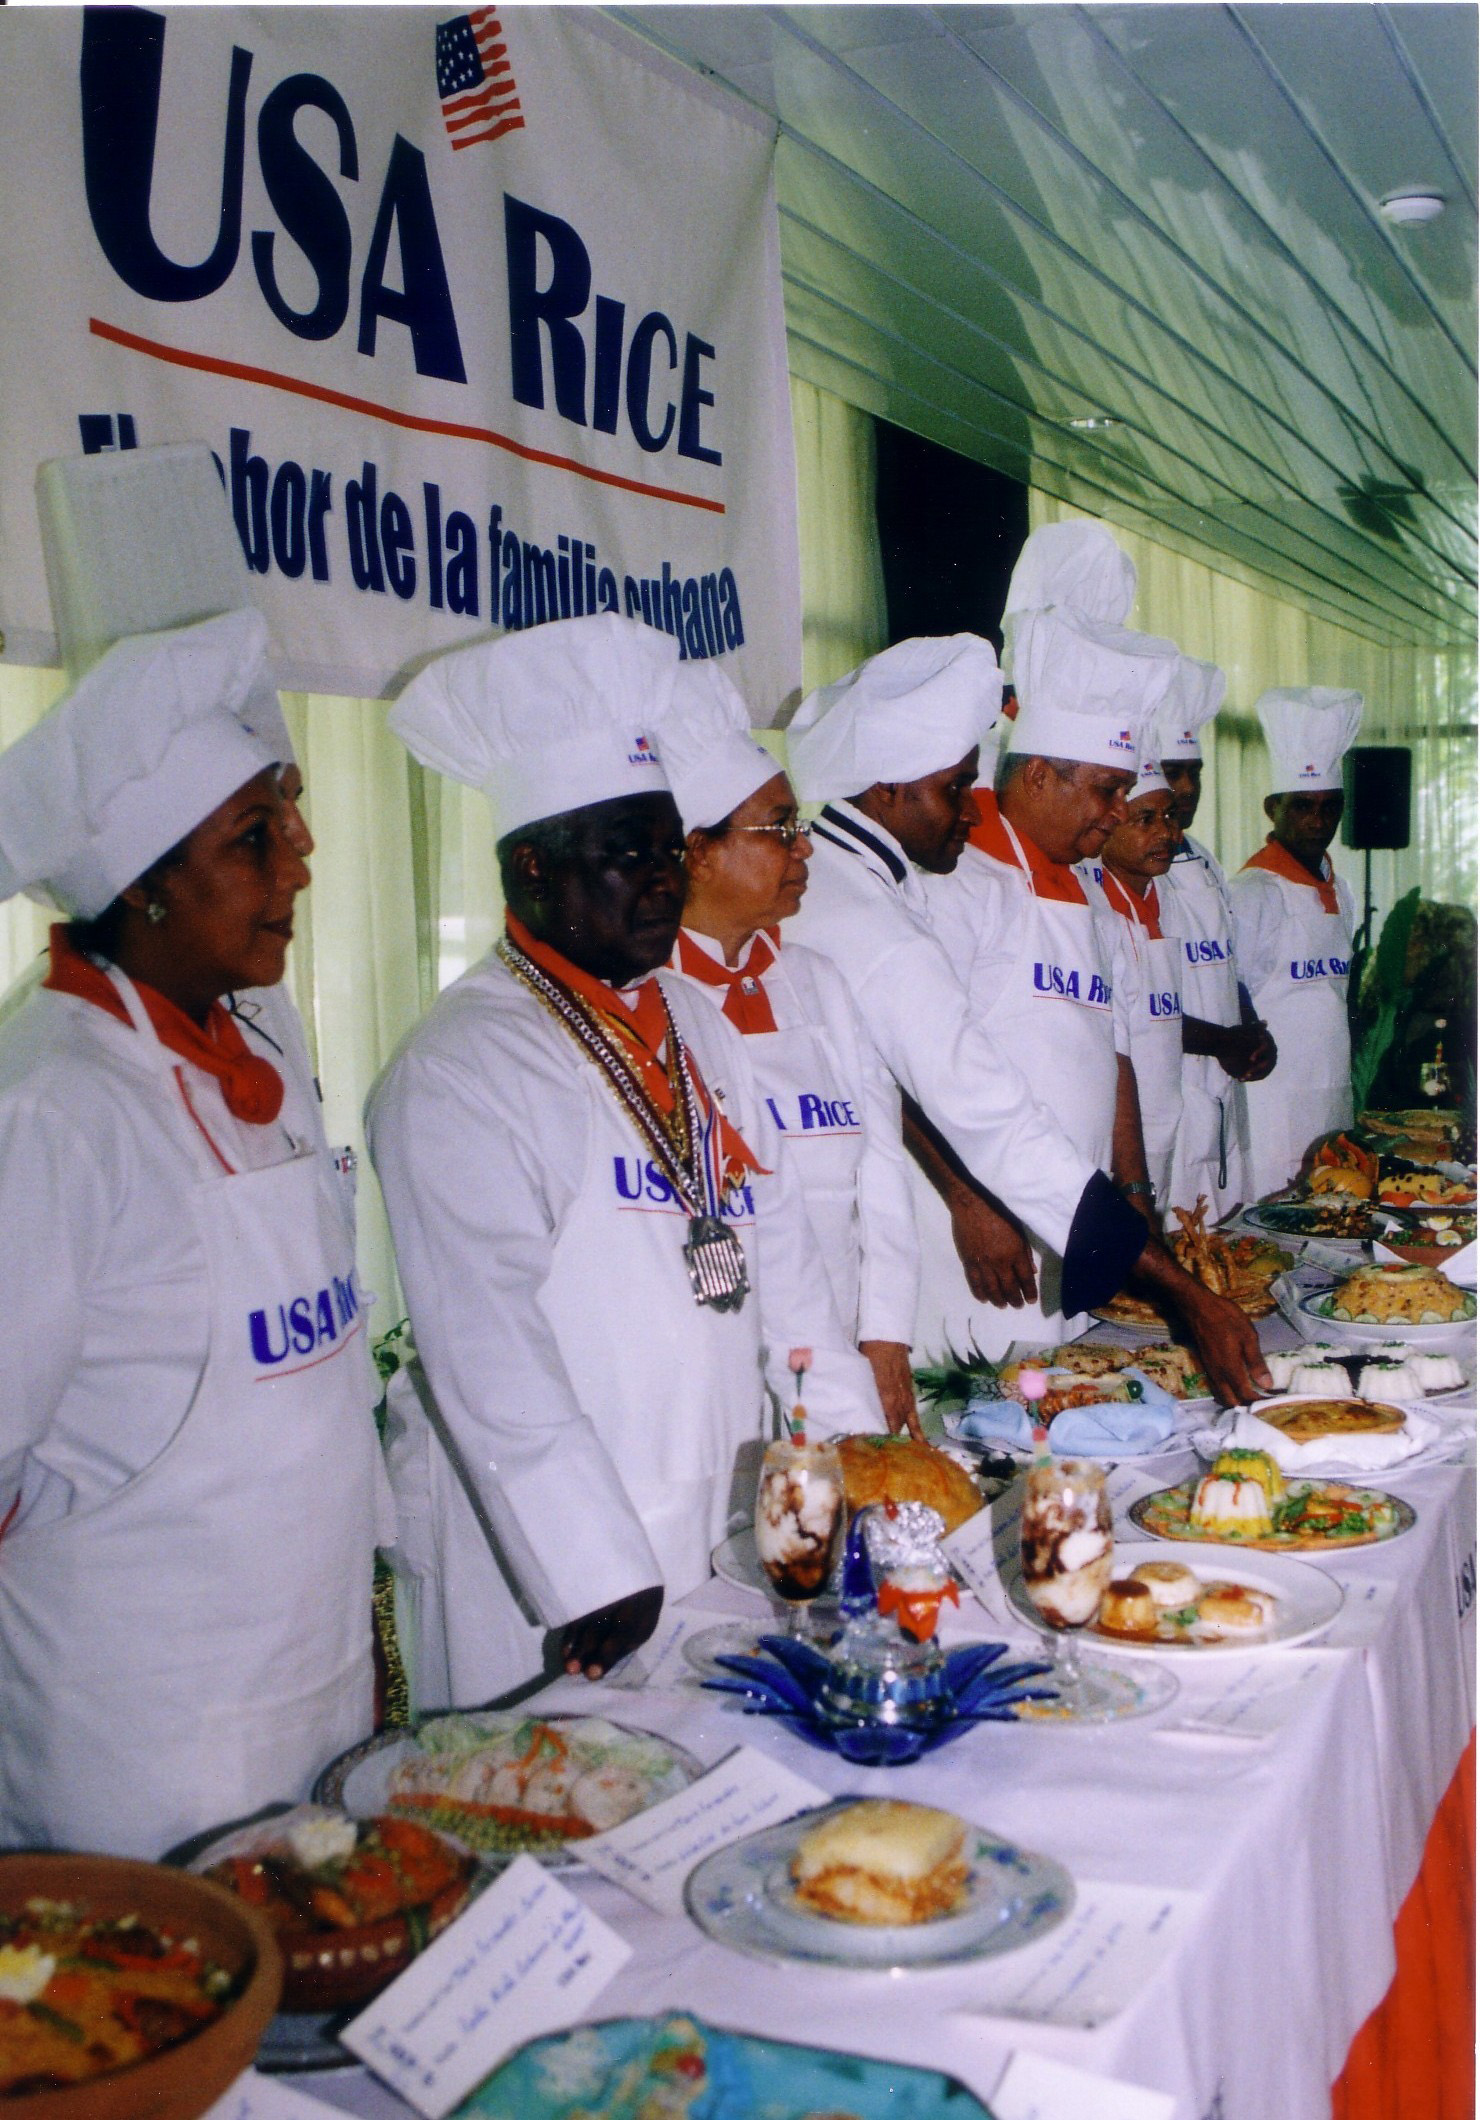 Long line of chefs wearing toques stand behind table laden with food, USA Rice banner hangs above their heads